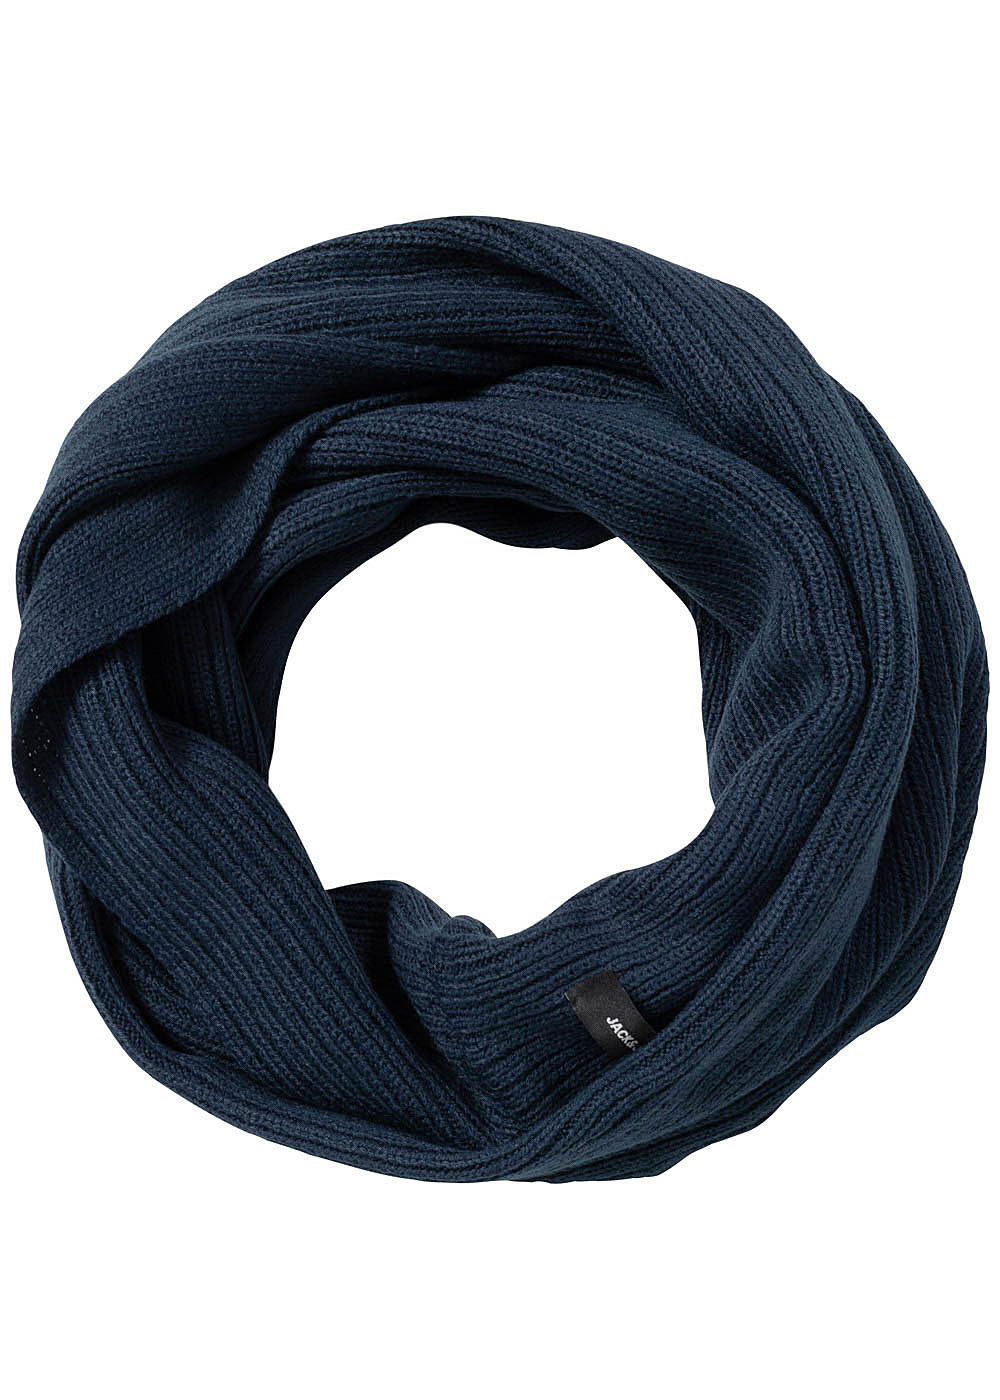 Jack and Jones Herren Knit Loop Scarf blazer navy blau - Art.-Nr.: 19083209-OS-NY